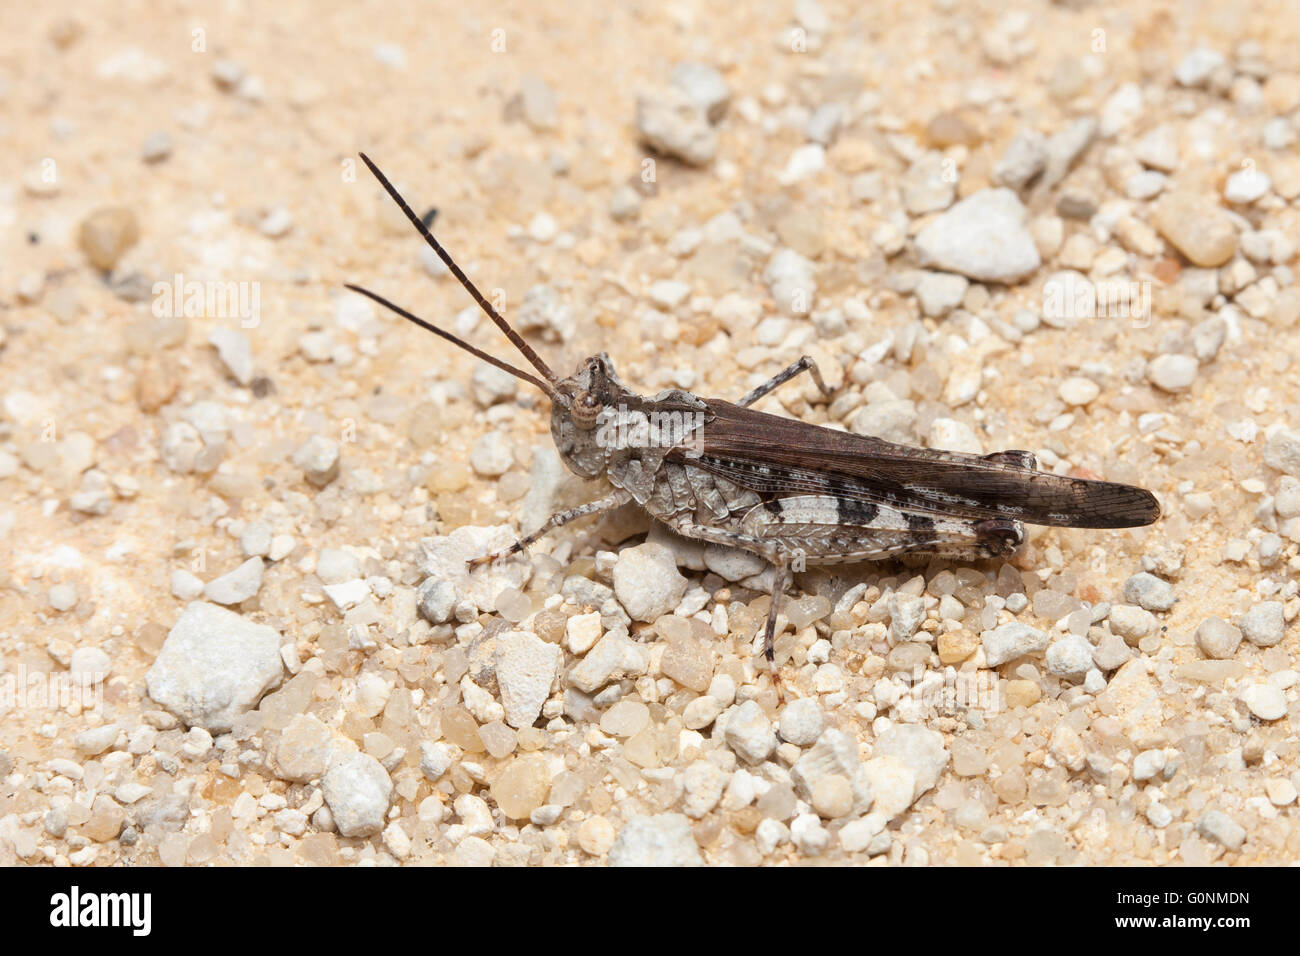 A Long-horned Grasshopper (Psinidia fenestralis) perches in the middle of a sandy road. - Stock Image